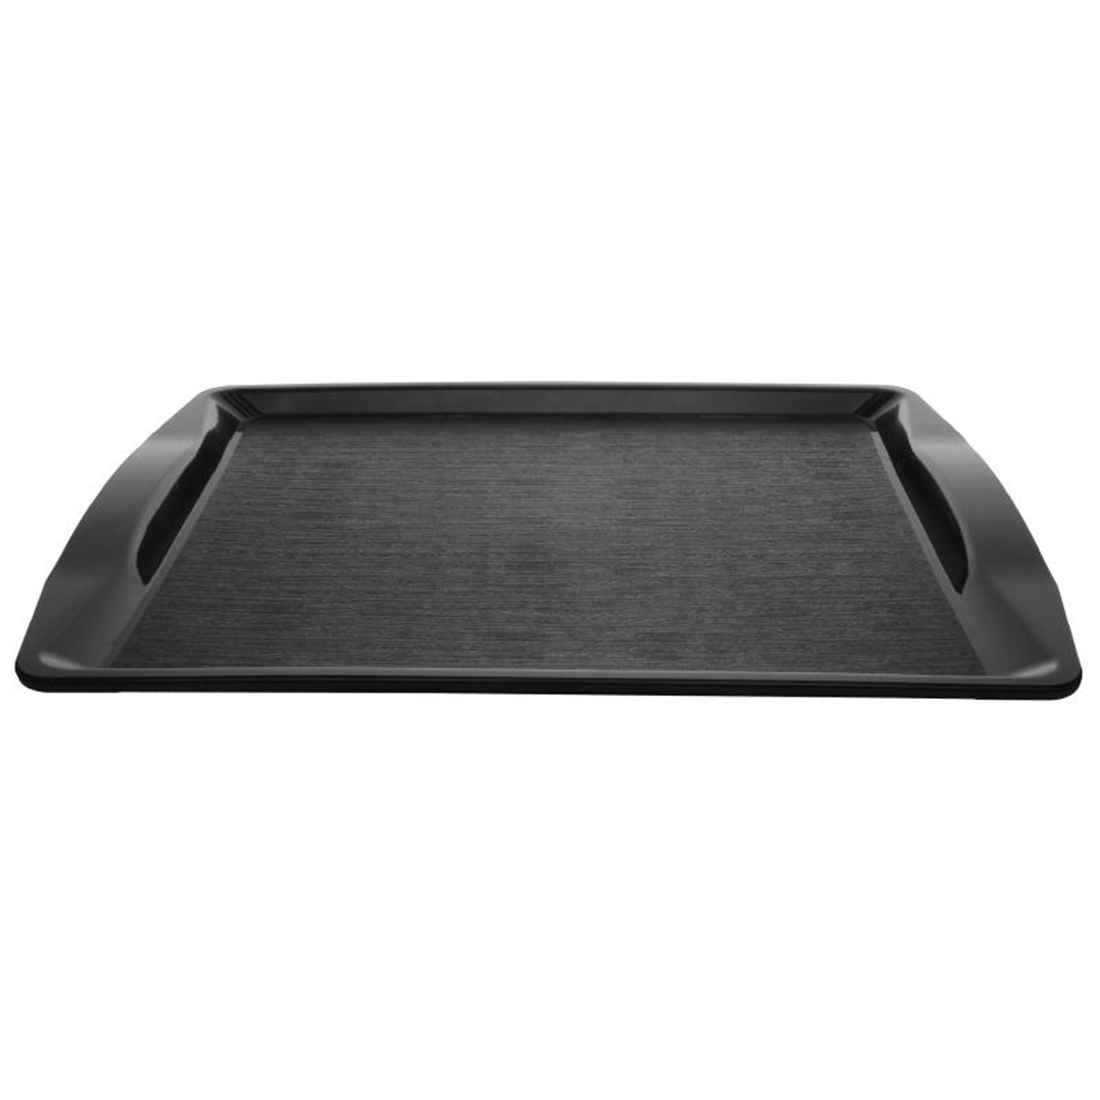 Kristallon Handled Fast Food Tray Black 420mm